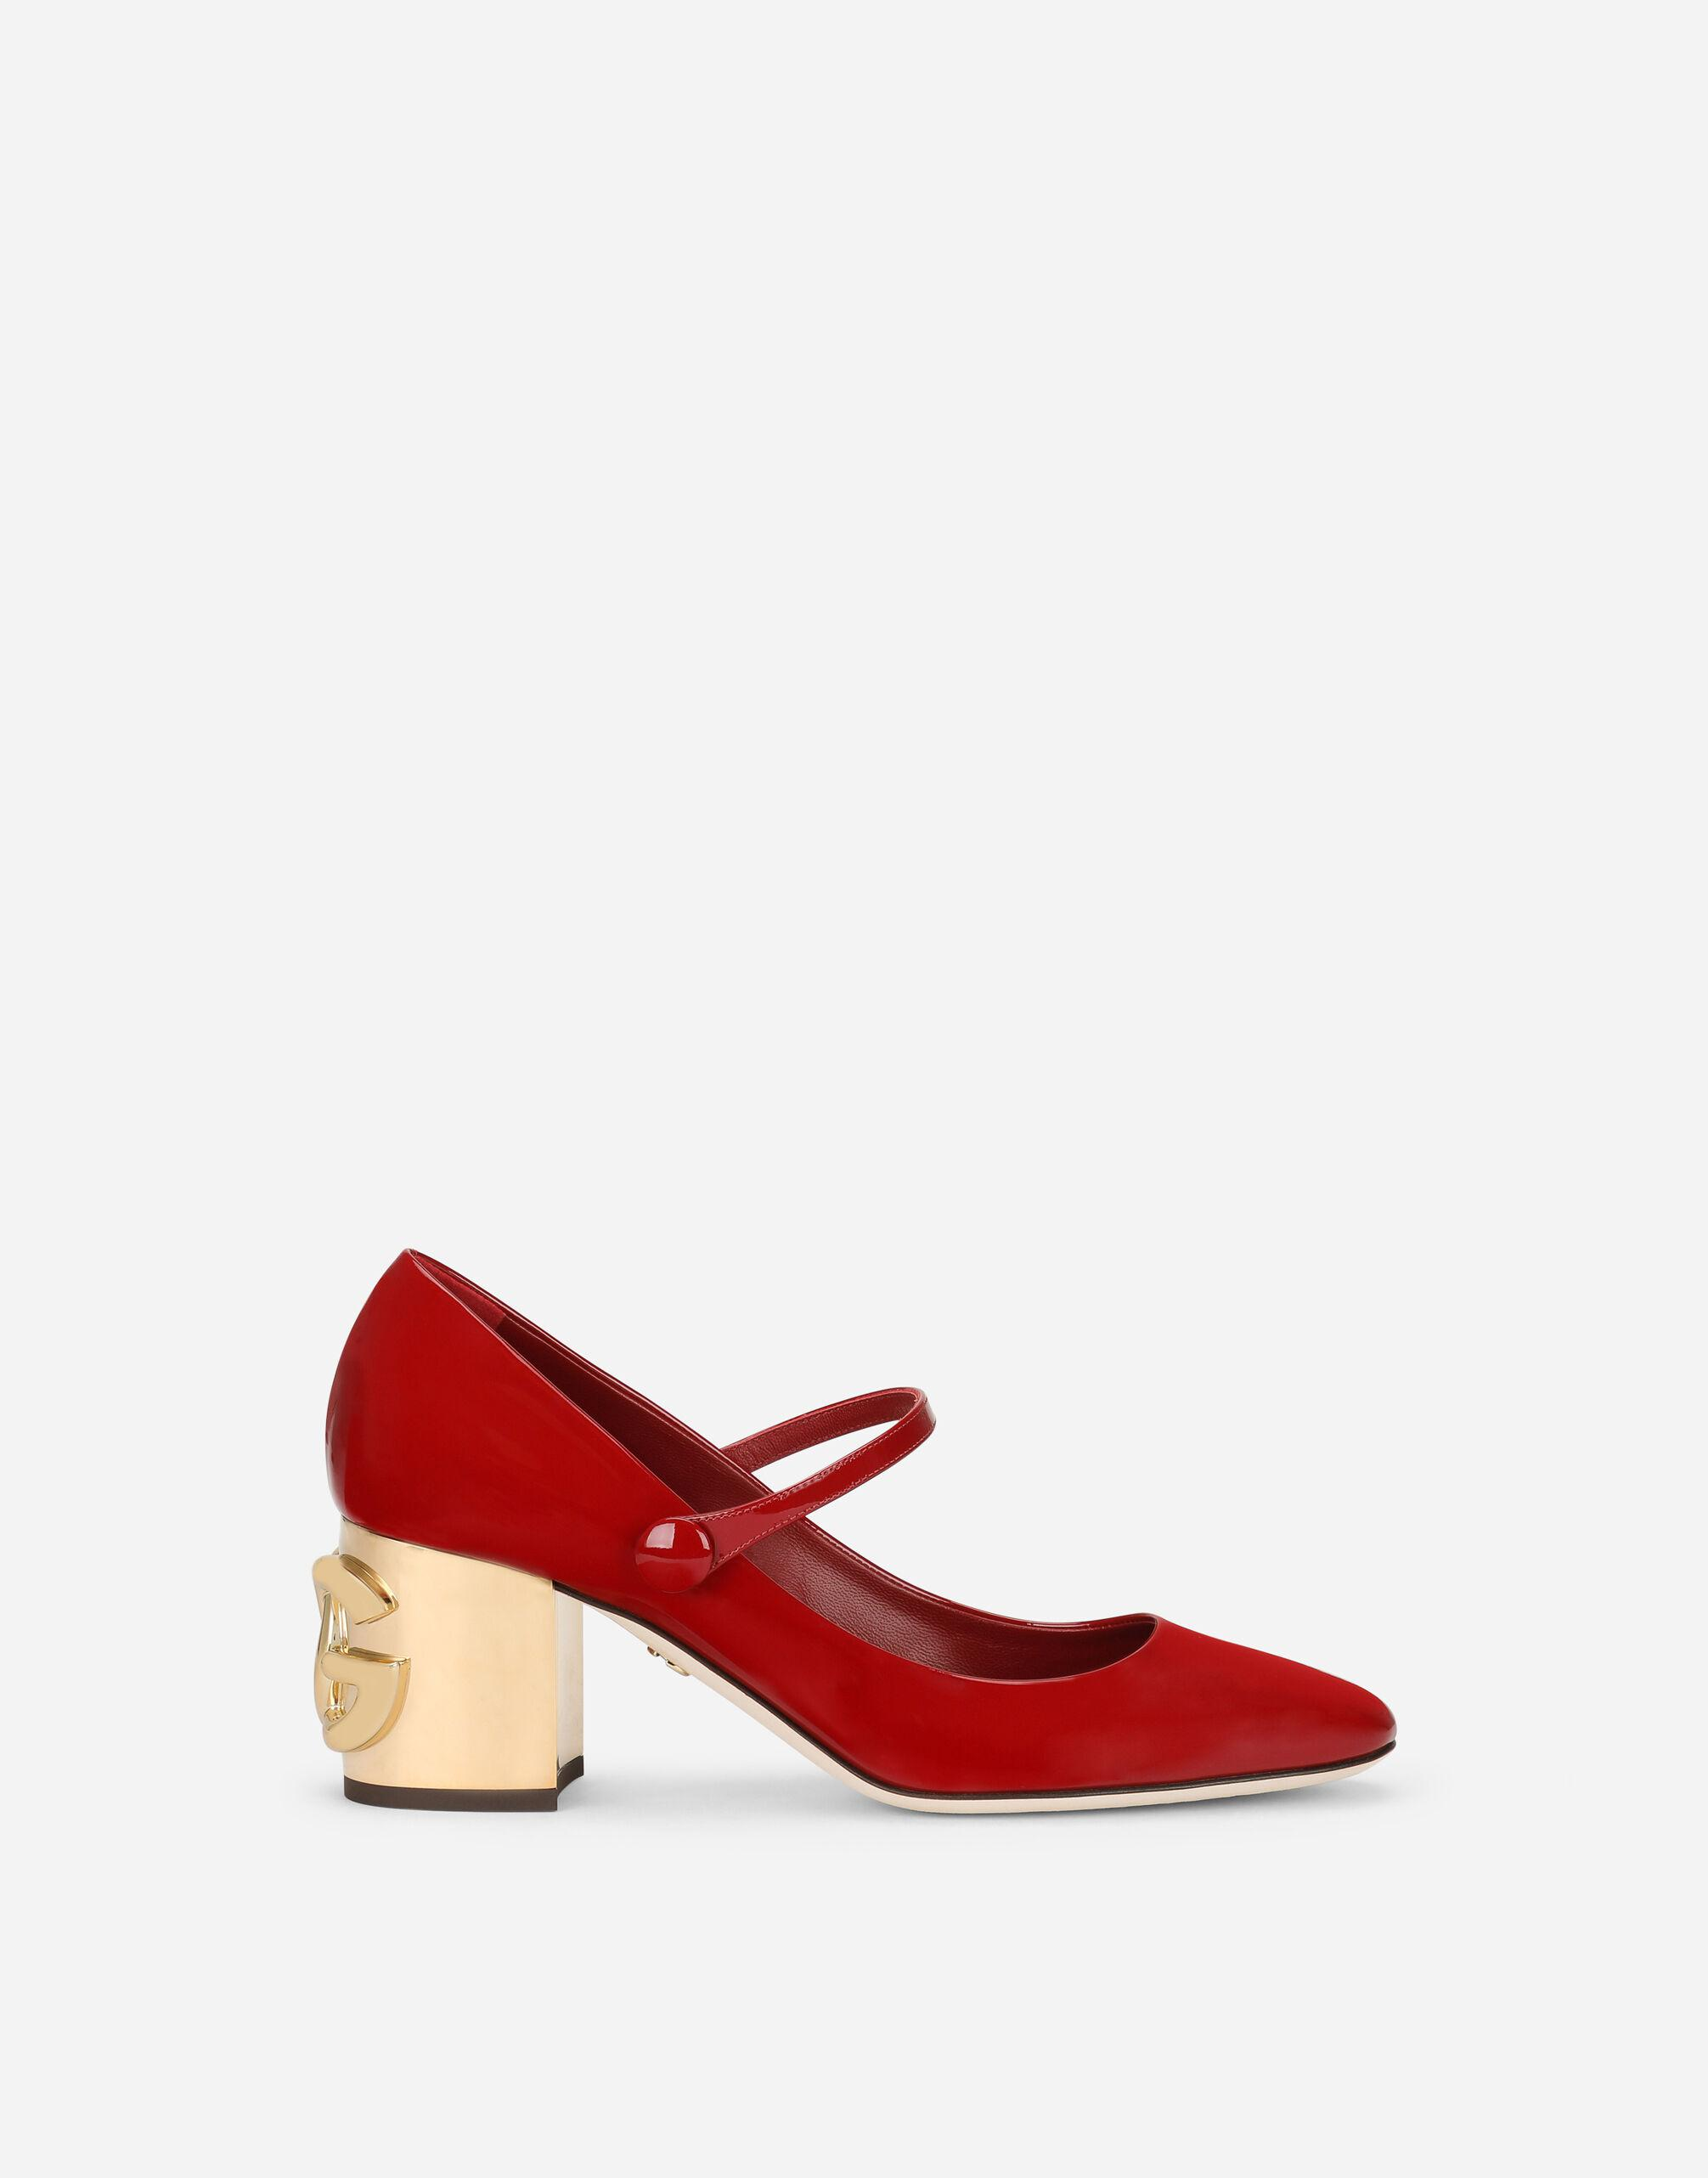 Patent leather Mary Janes with DG Karol heel